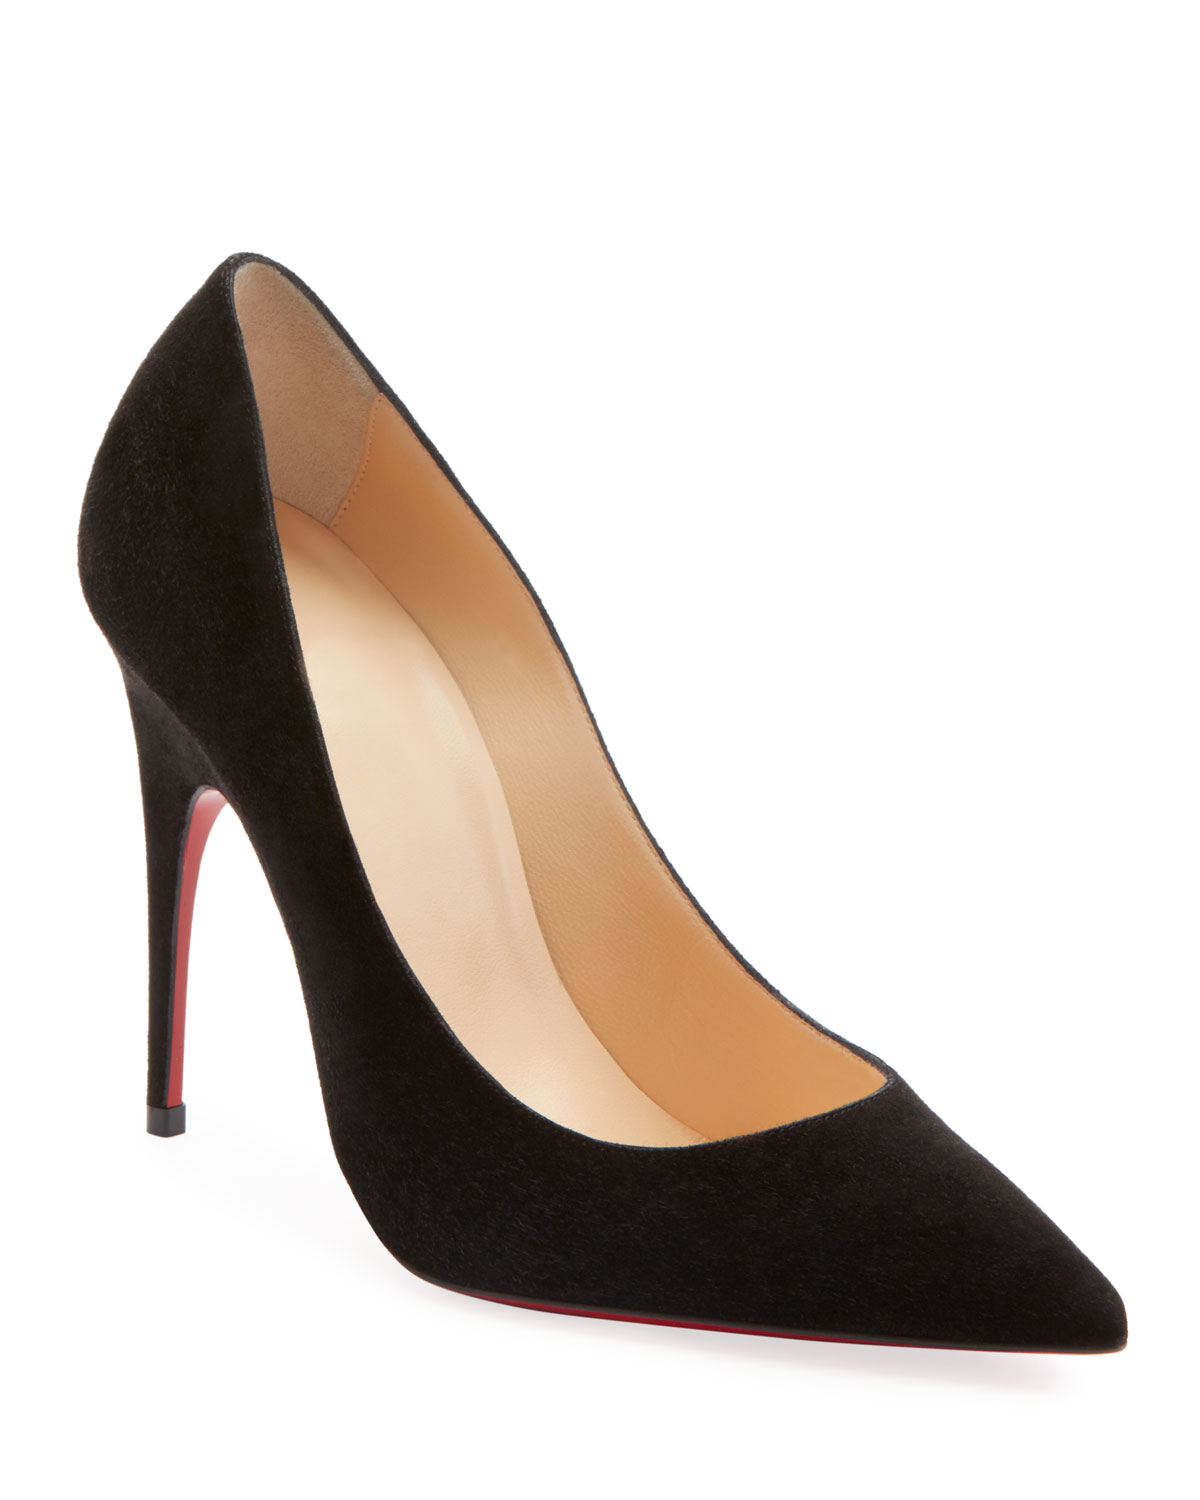 Alminette 100 Suede Pumps in Black